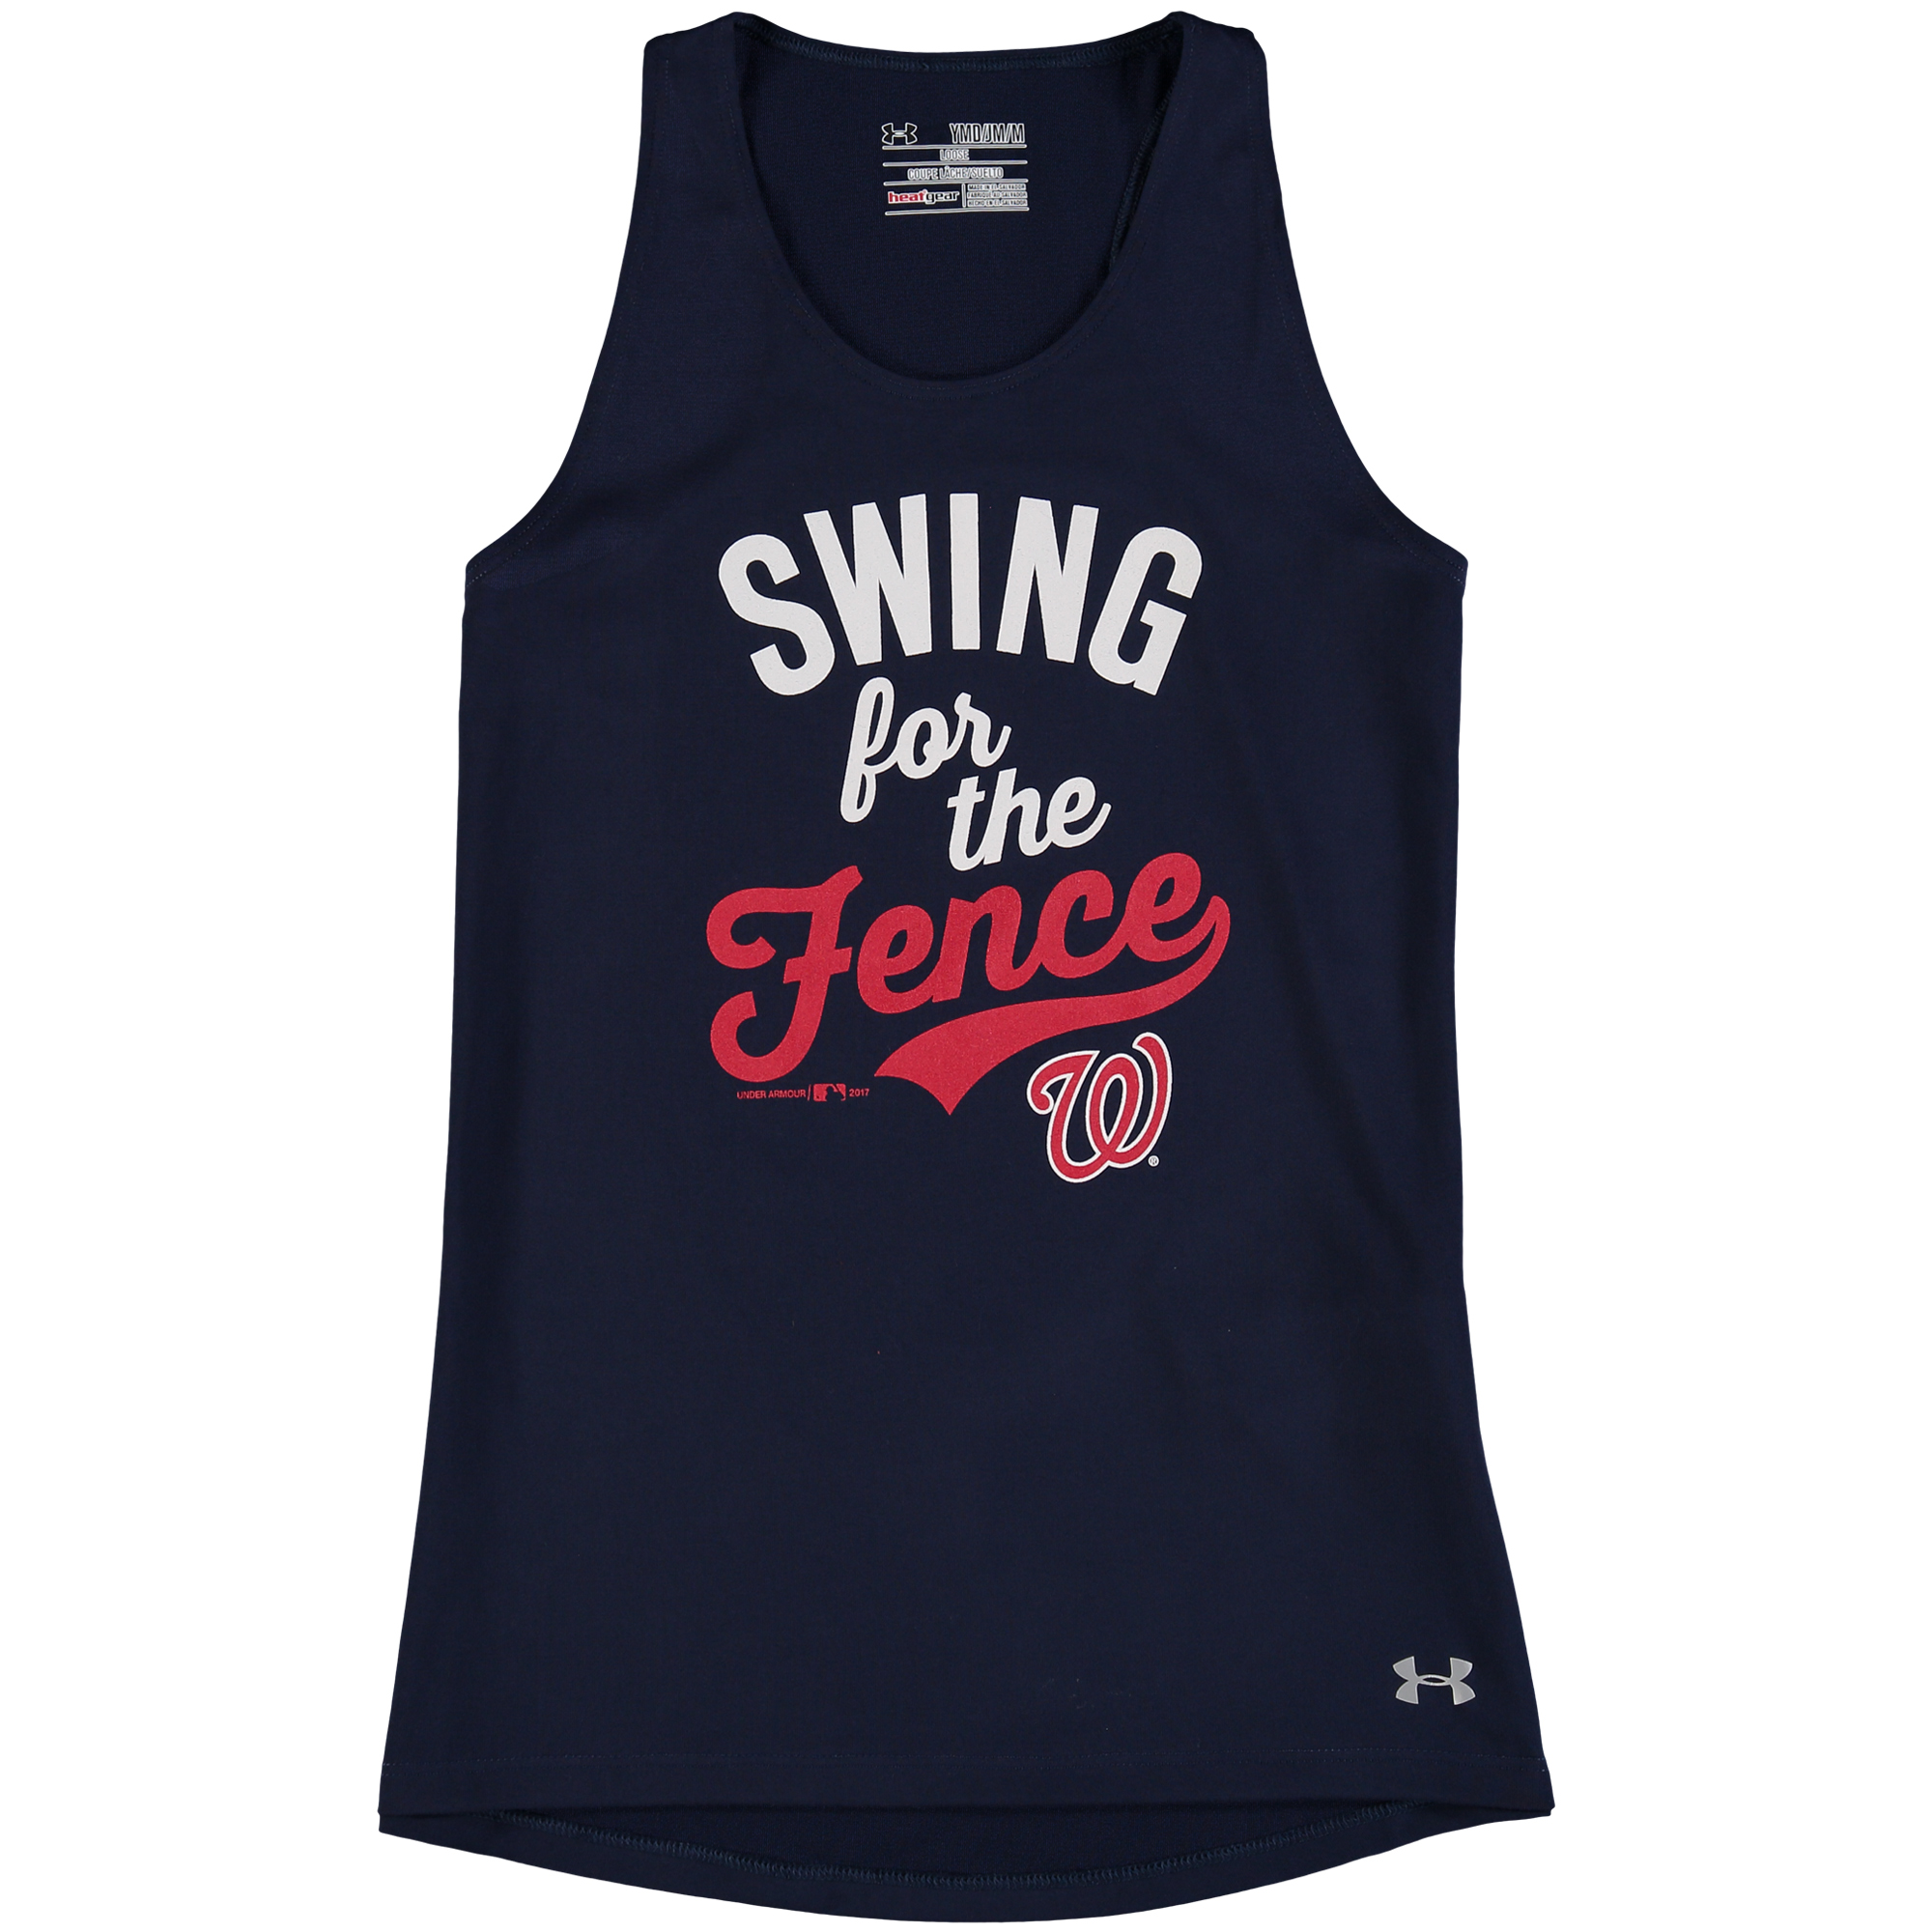 Washington Nationals Under Armour Girls Youth Tech Performance Tank Top - Navy